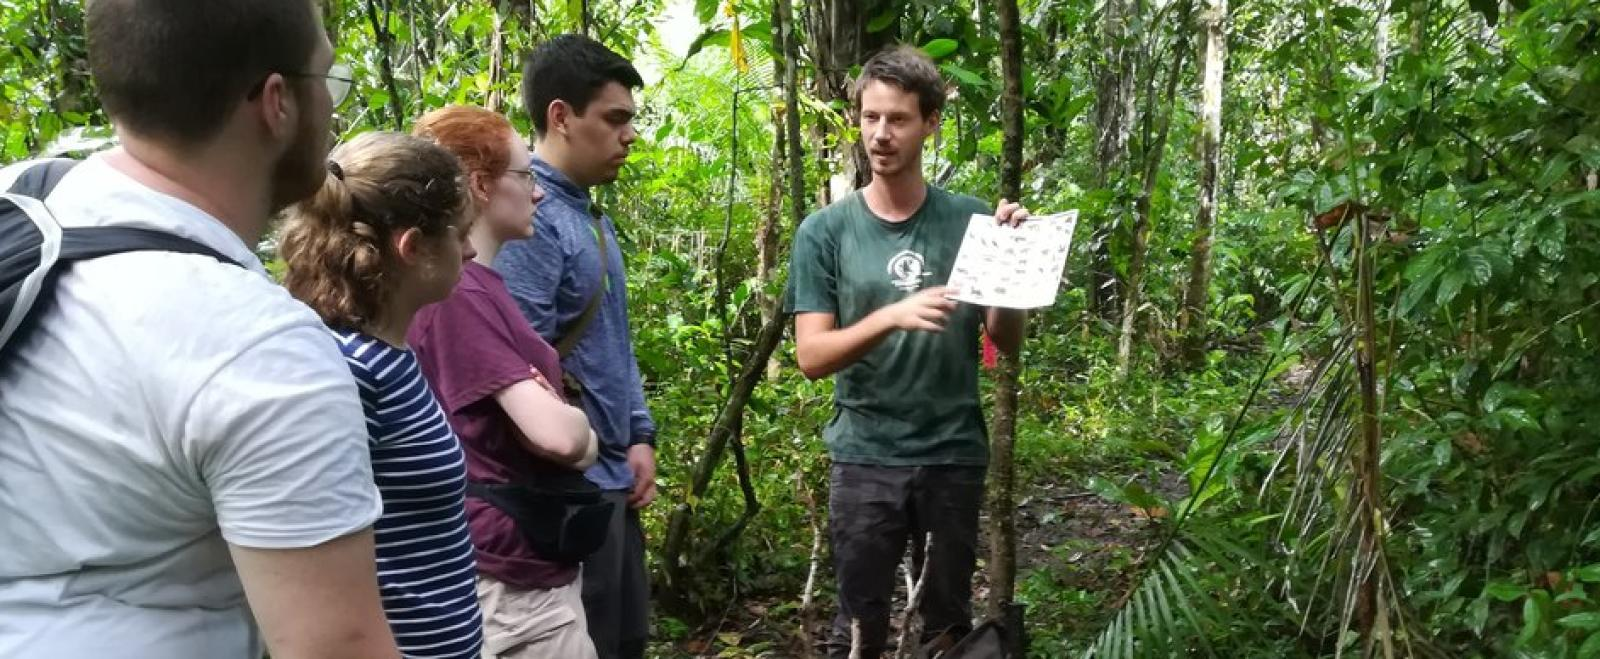 A group of Conservation volunteers in the Amazon Rainforest listen to a briefing from a staff member.